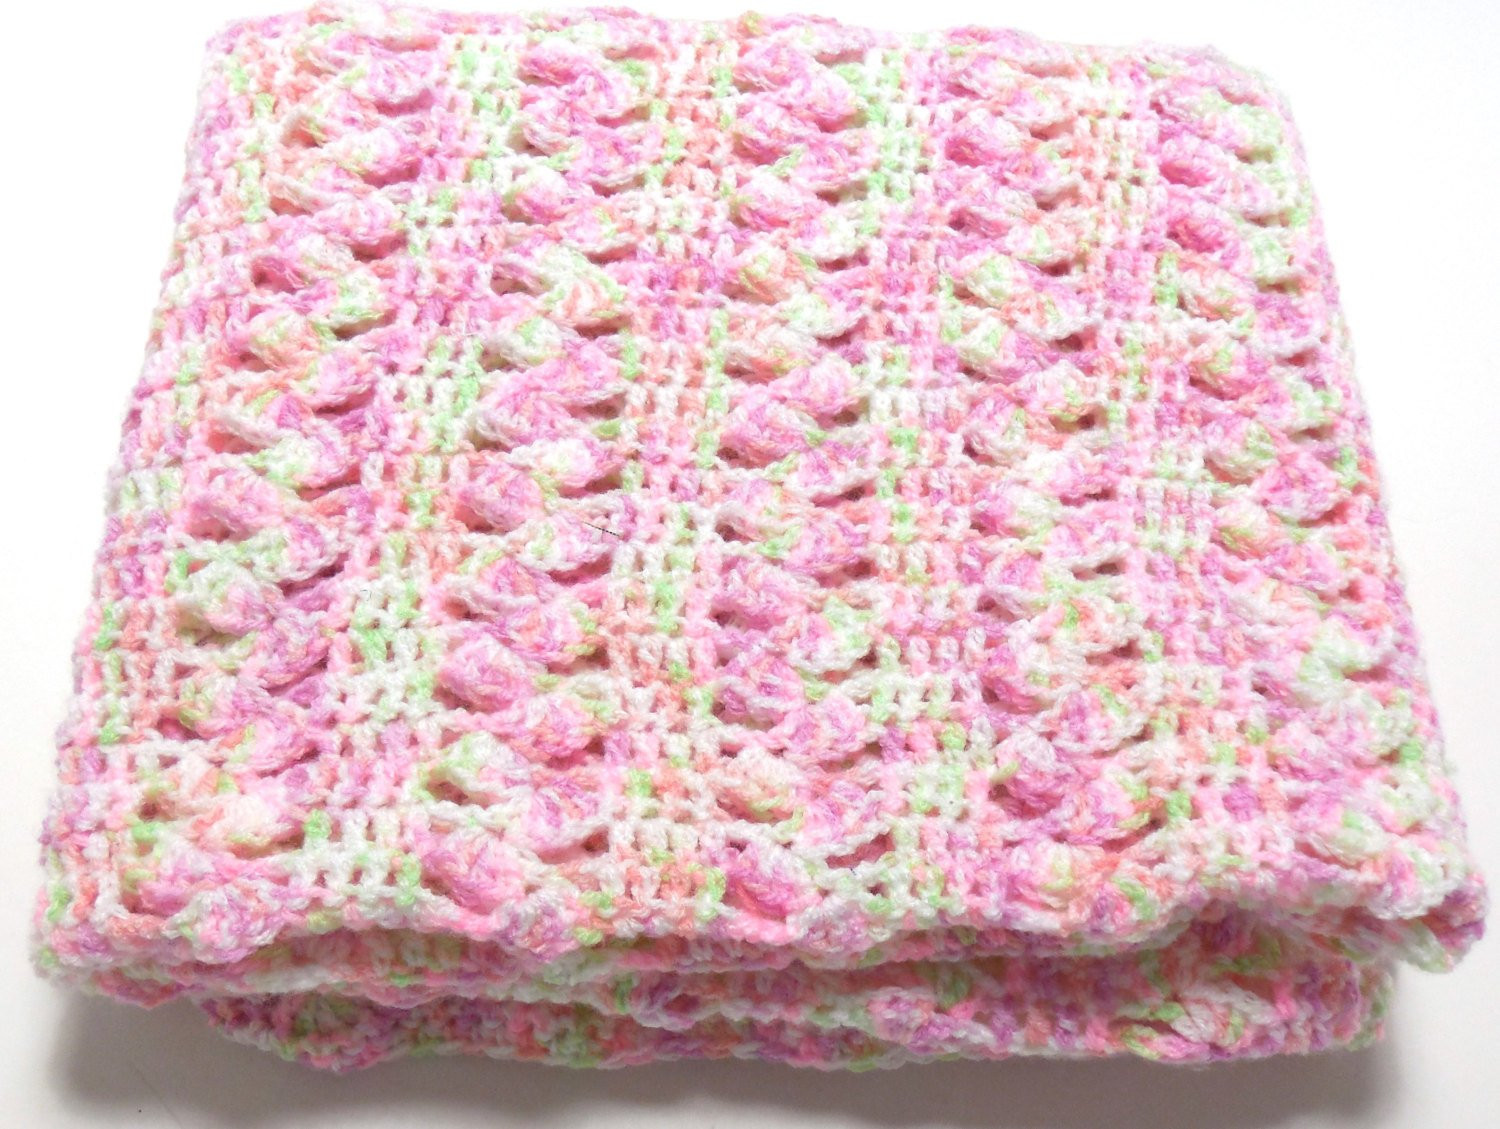 Baby Girl Crochet Blanket Patterns Luxury Crochet Baby Blanket Crochet Baby Girl Blanket Variegated Of Unique 41 Photos Baby Girl Crochet Blanket Patterns